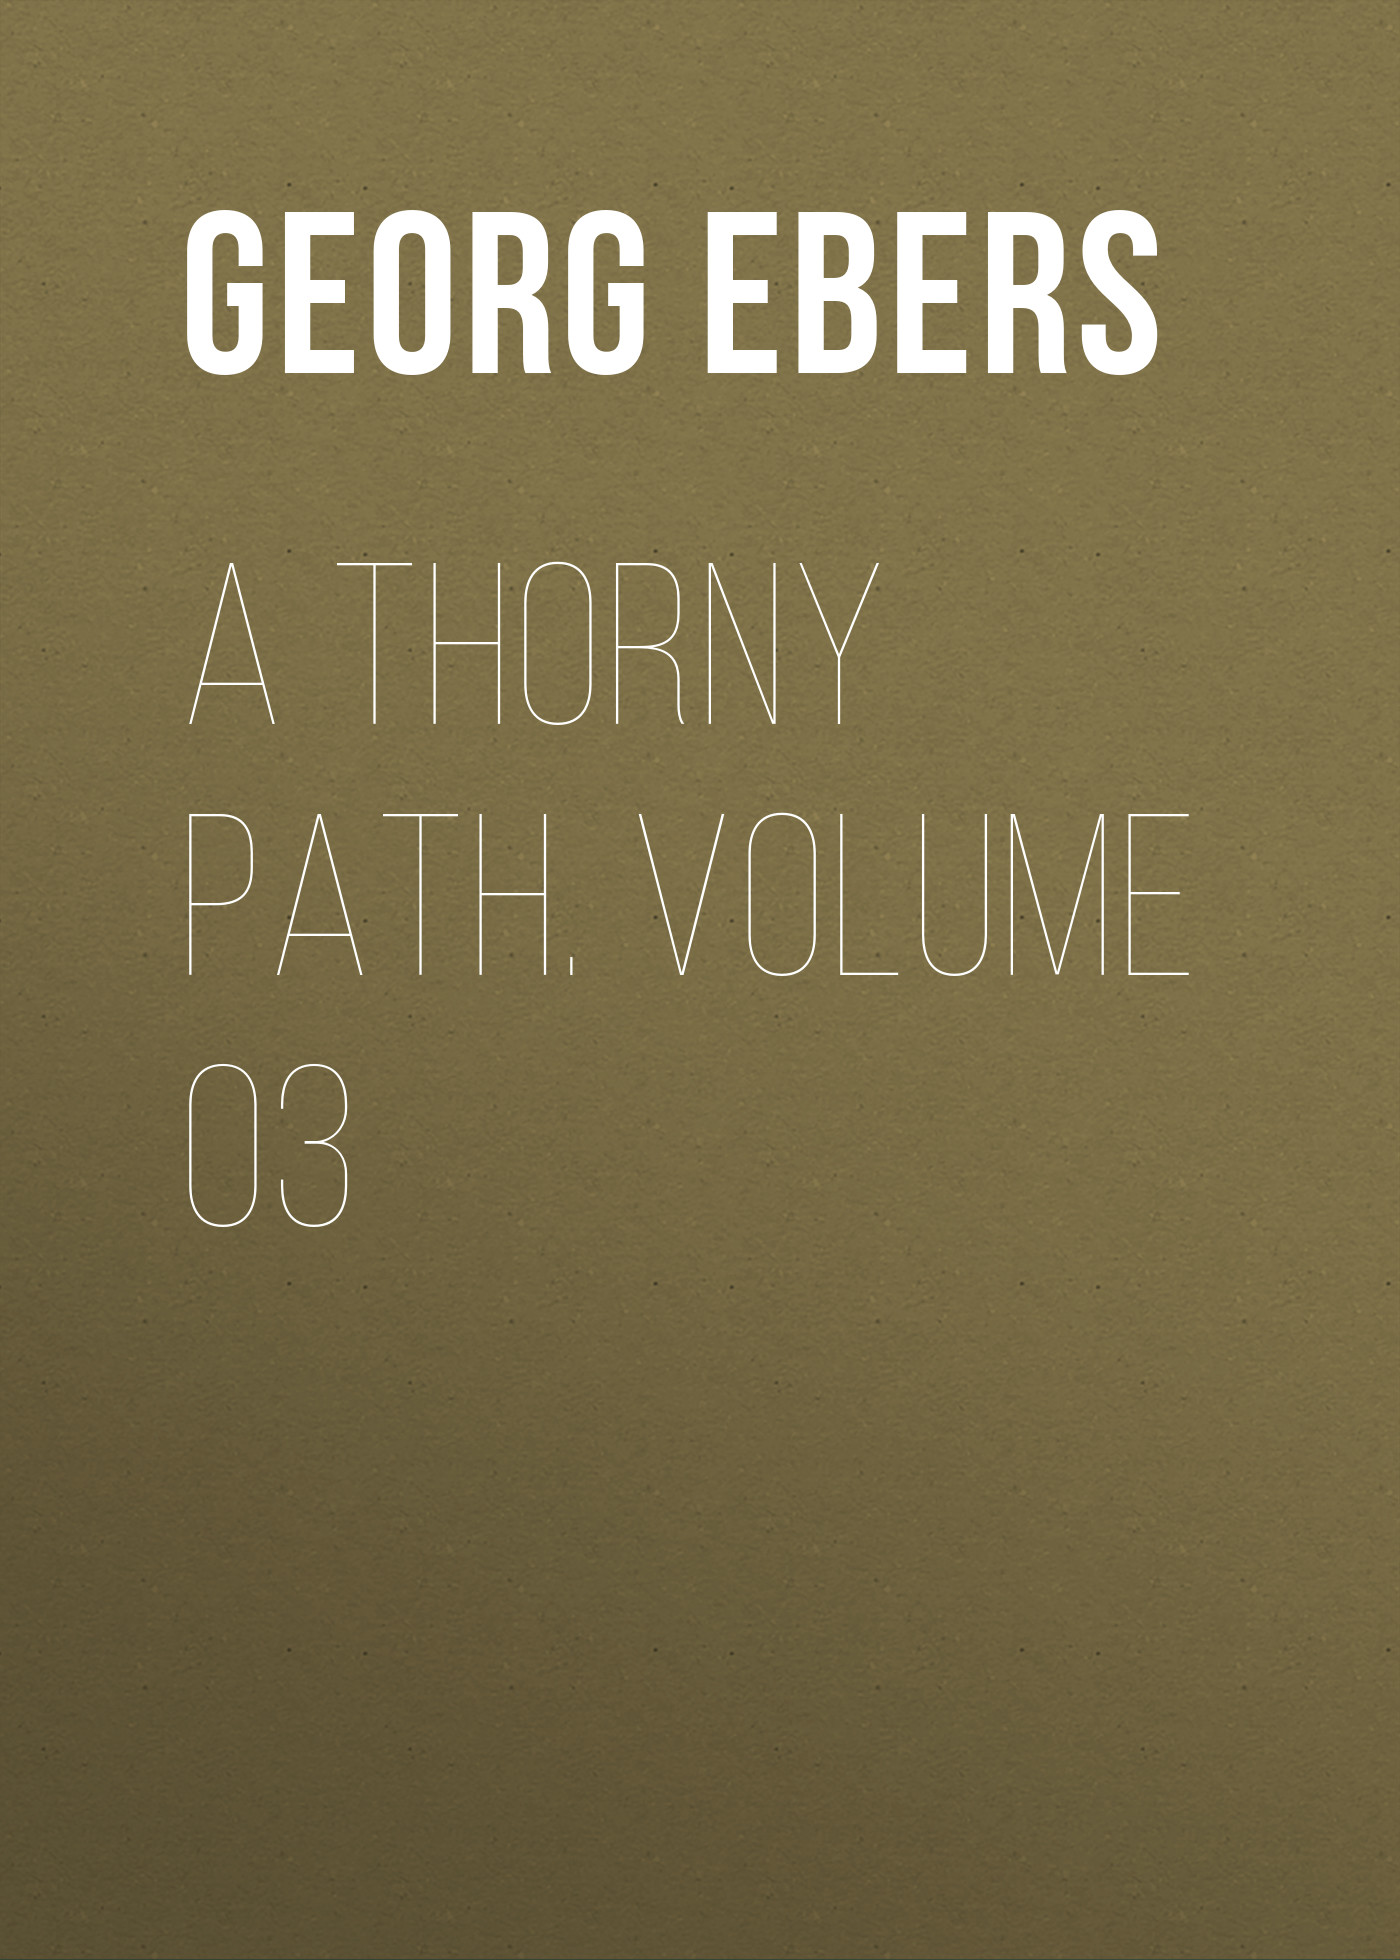 Georg Ebers A Thorny Path. Volume 03